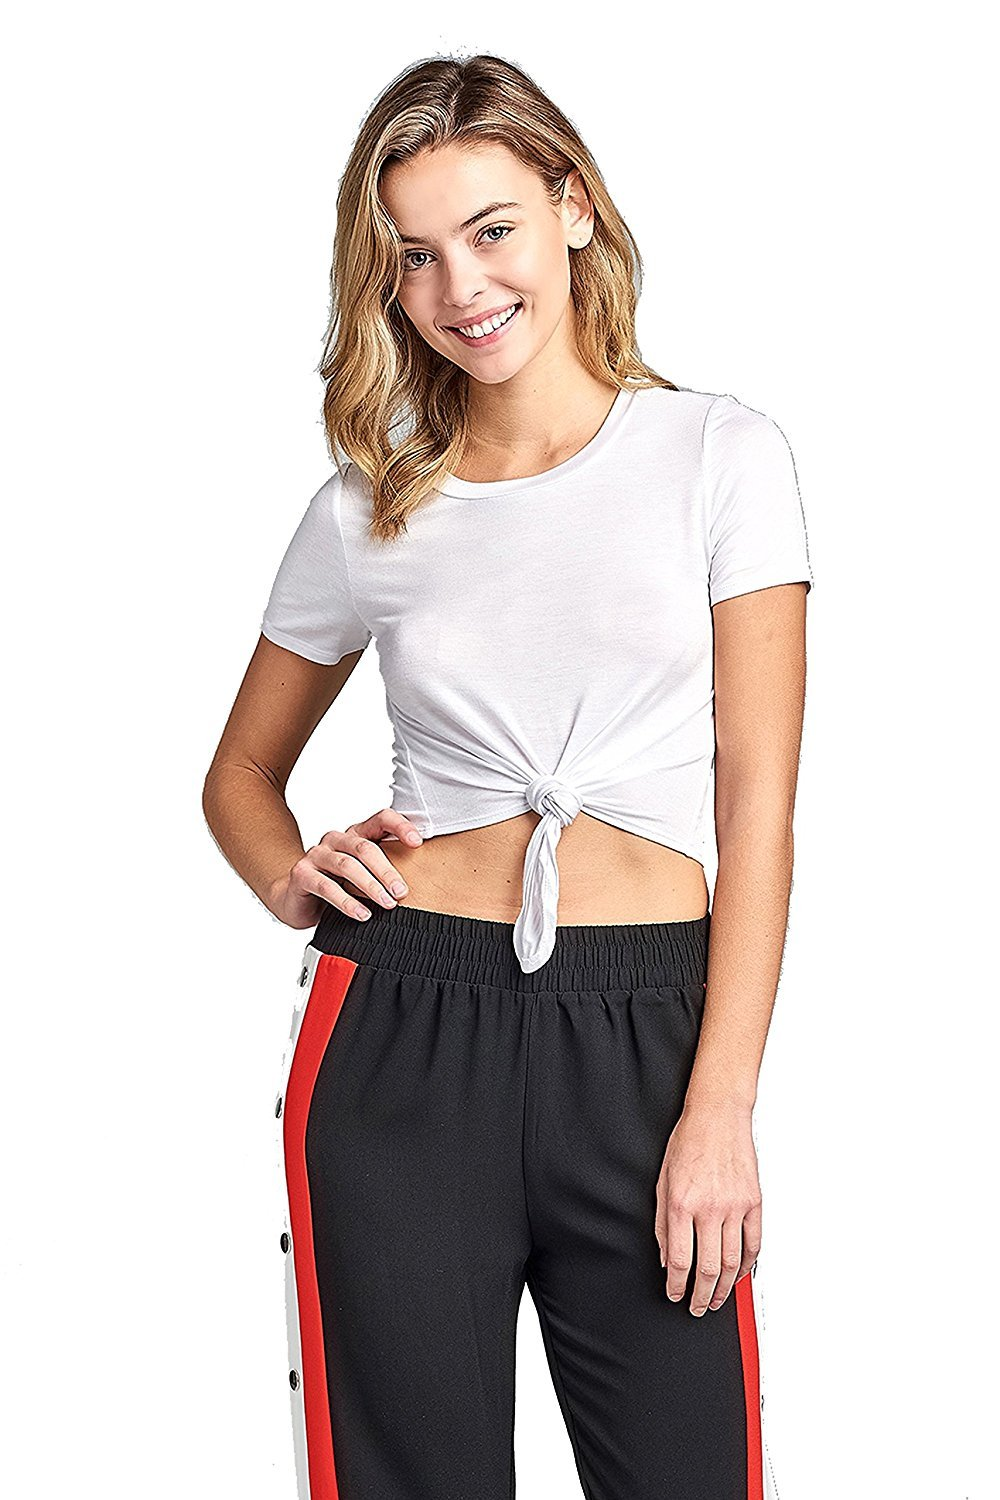 Khanomak Plain Short Sleeve Round Neck With Knotted Front Basic Crop Top